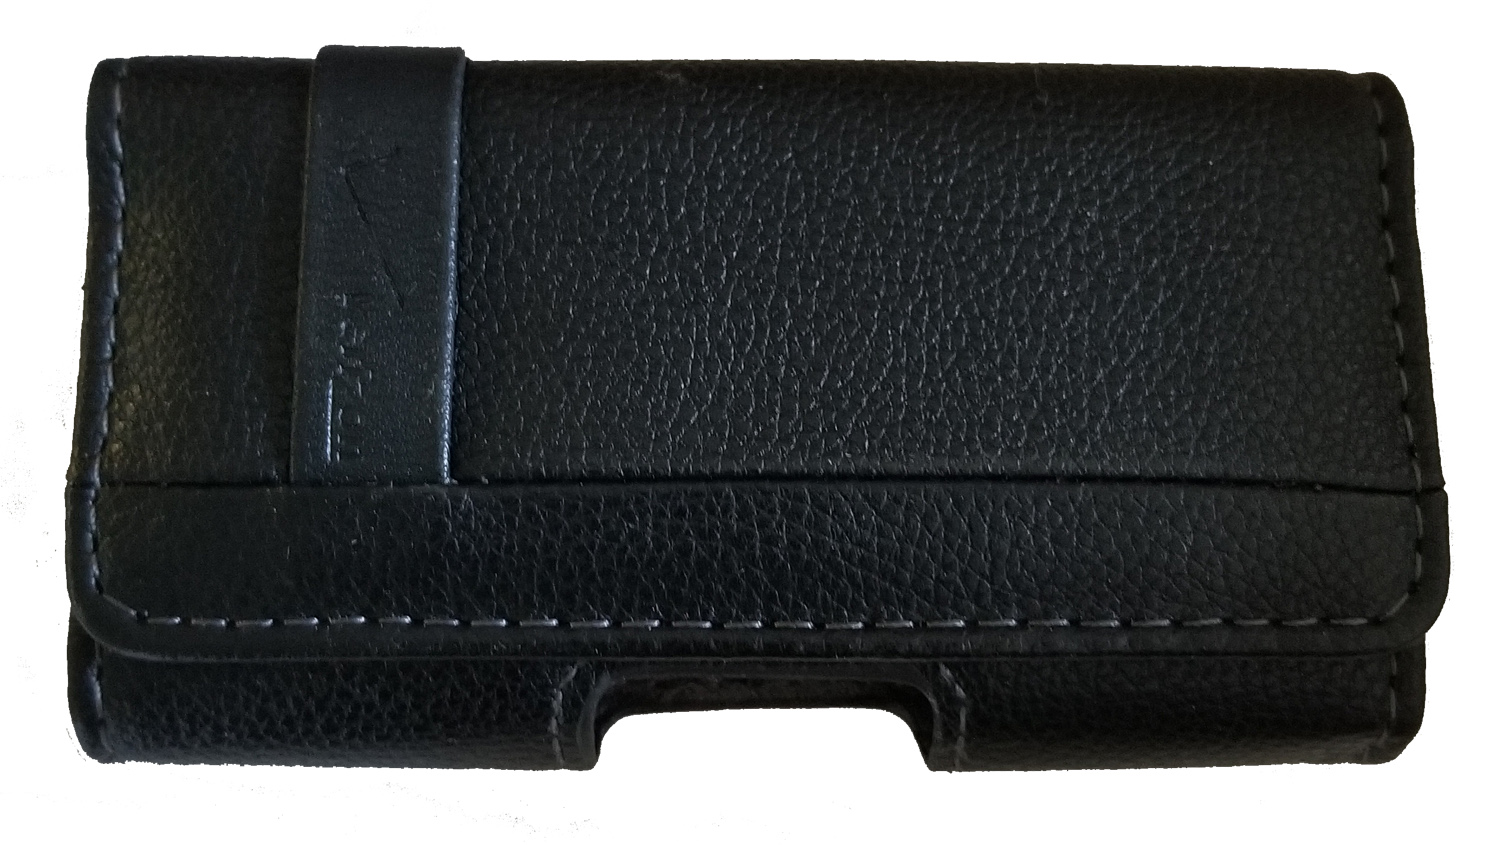 Verizon Universal Horizontal Pouch, Side Pouch with Band, for Convoy 4, Exalt II, DuraXV Plus, Convoy 3, Exalt, Cosmos 3